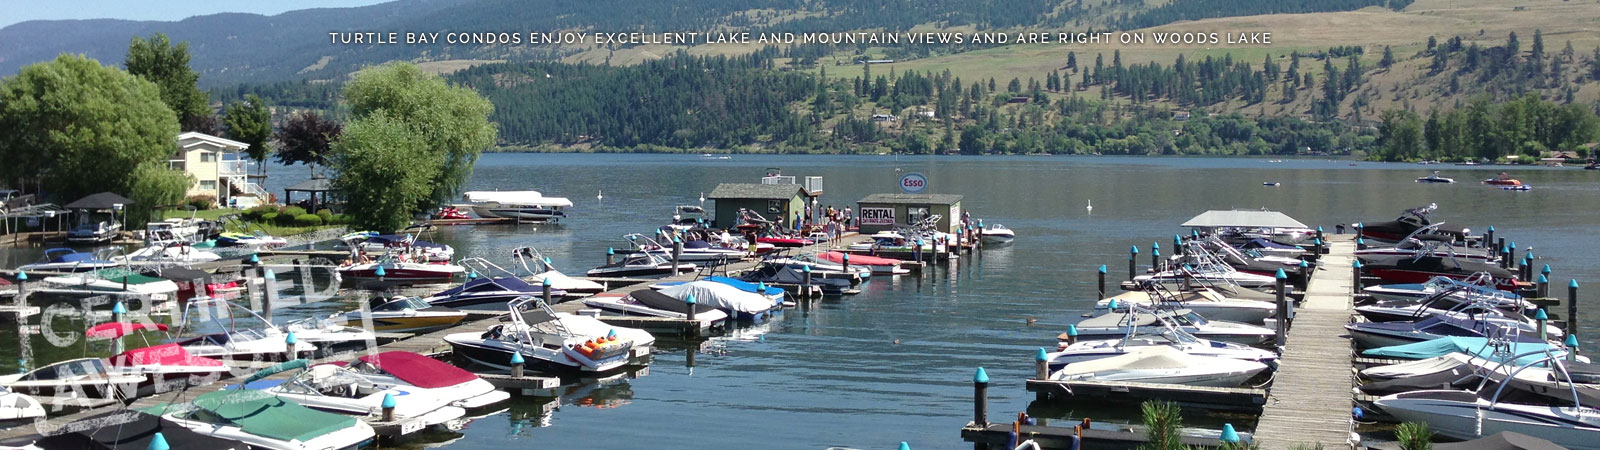 View of Boat Rentals on Woods Lake